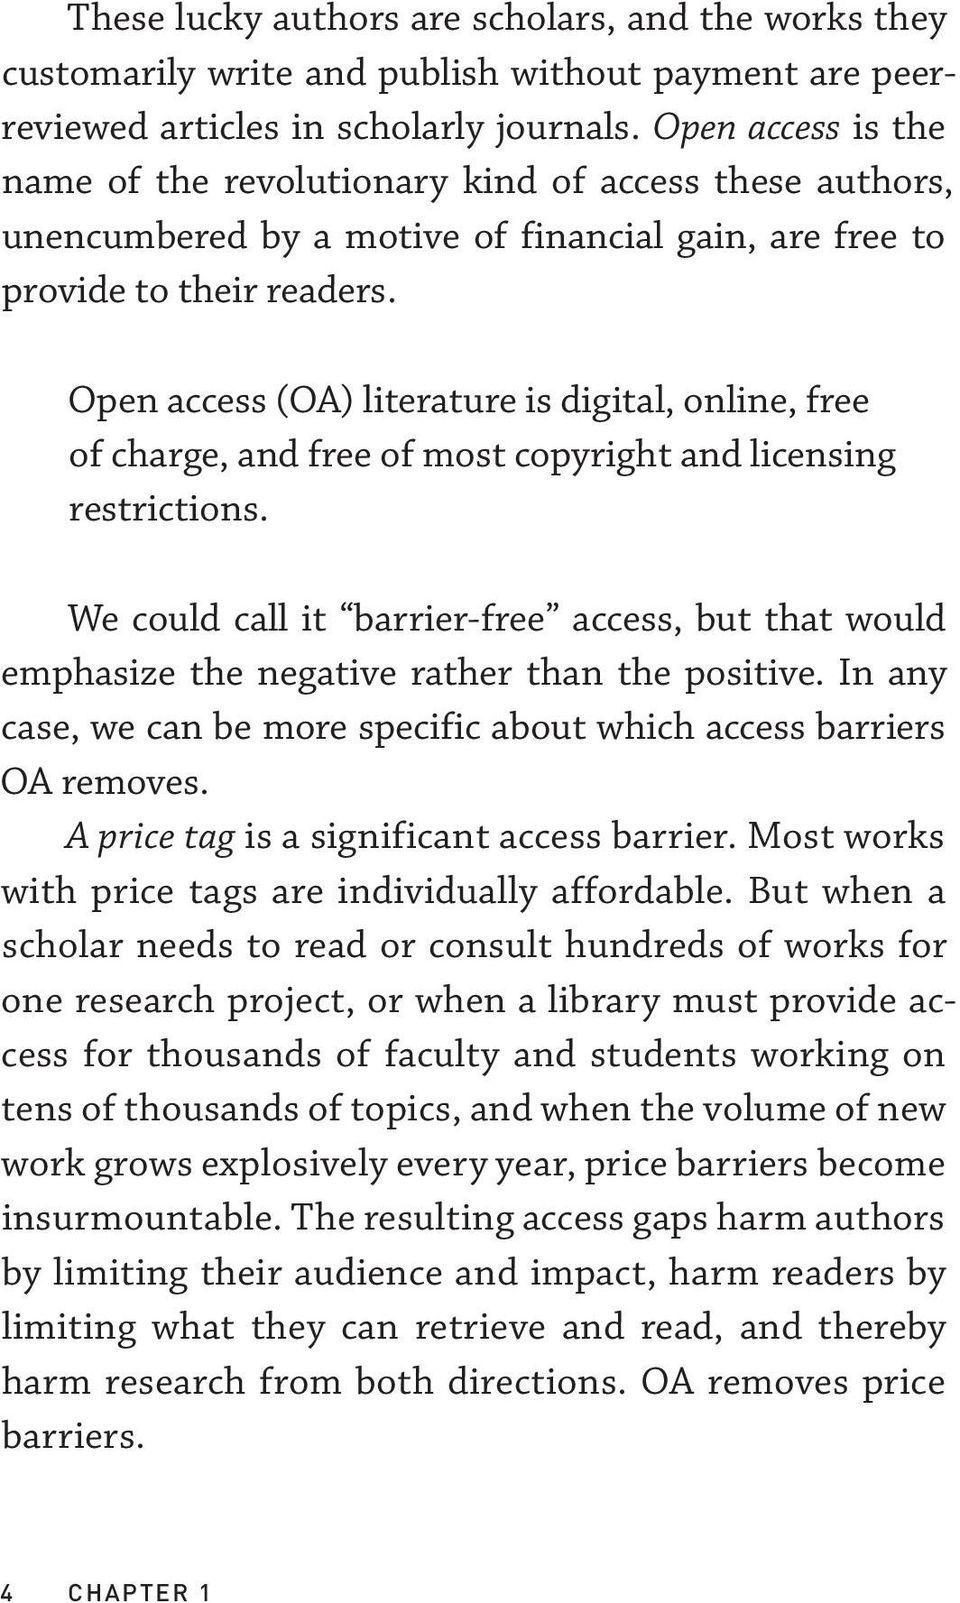 Open access (OA) literature is digital, online, free of charge, and free of most copyright and licensing restrictions.